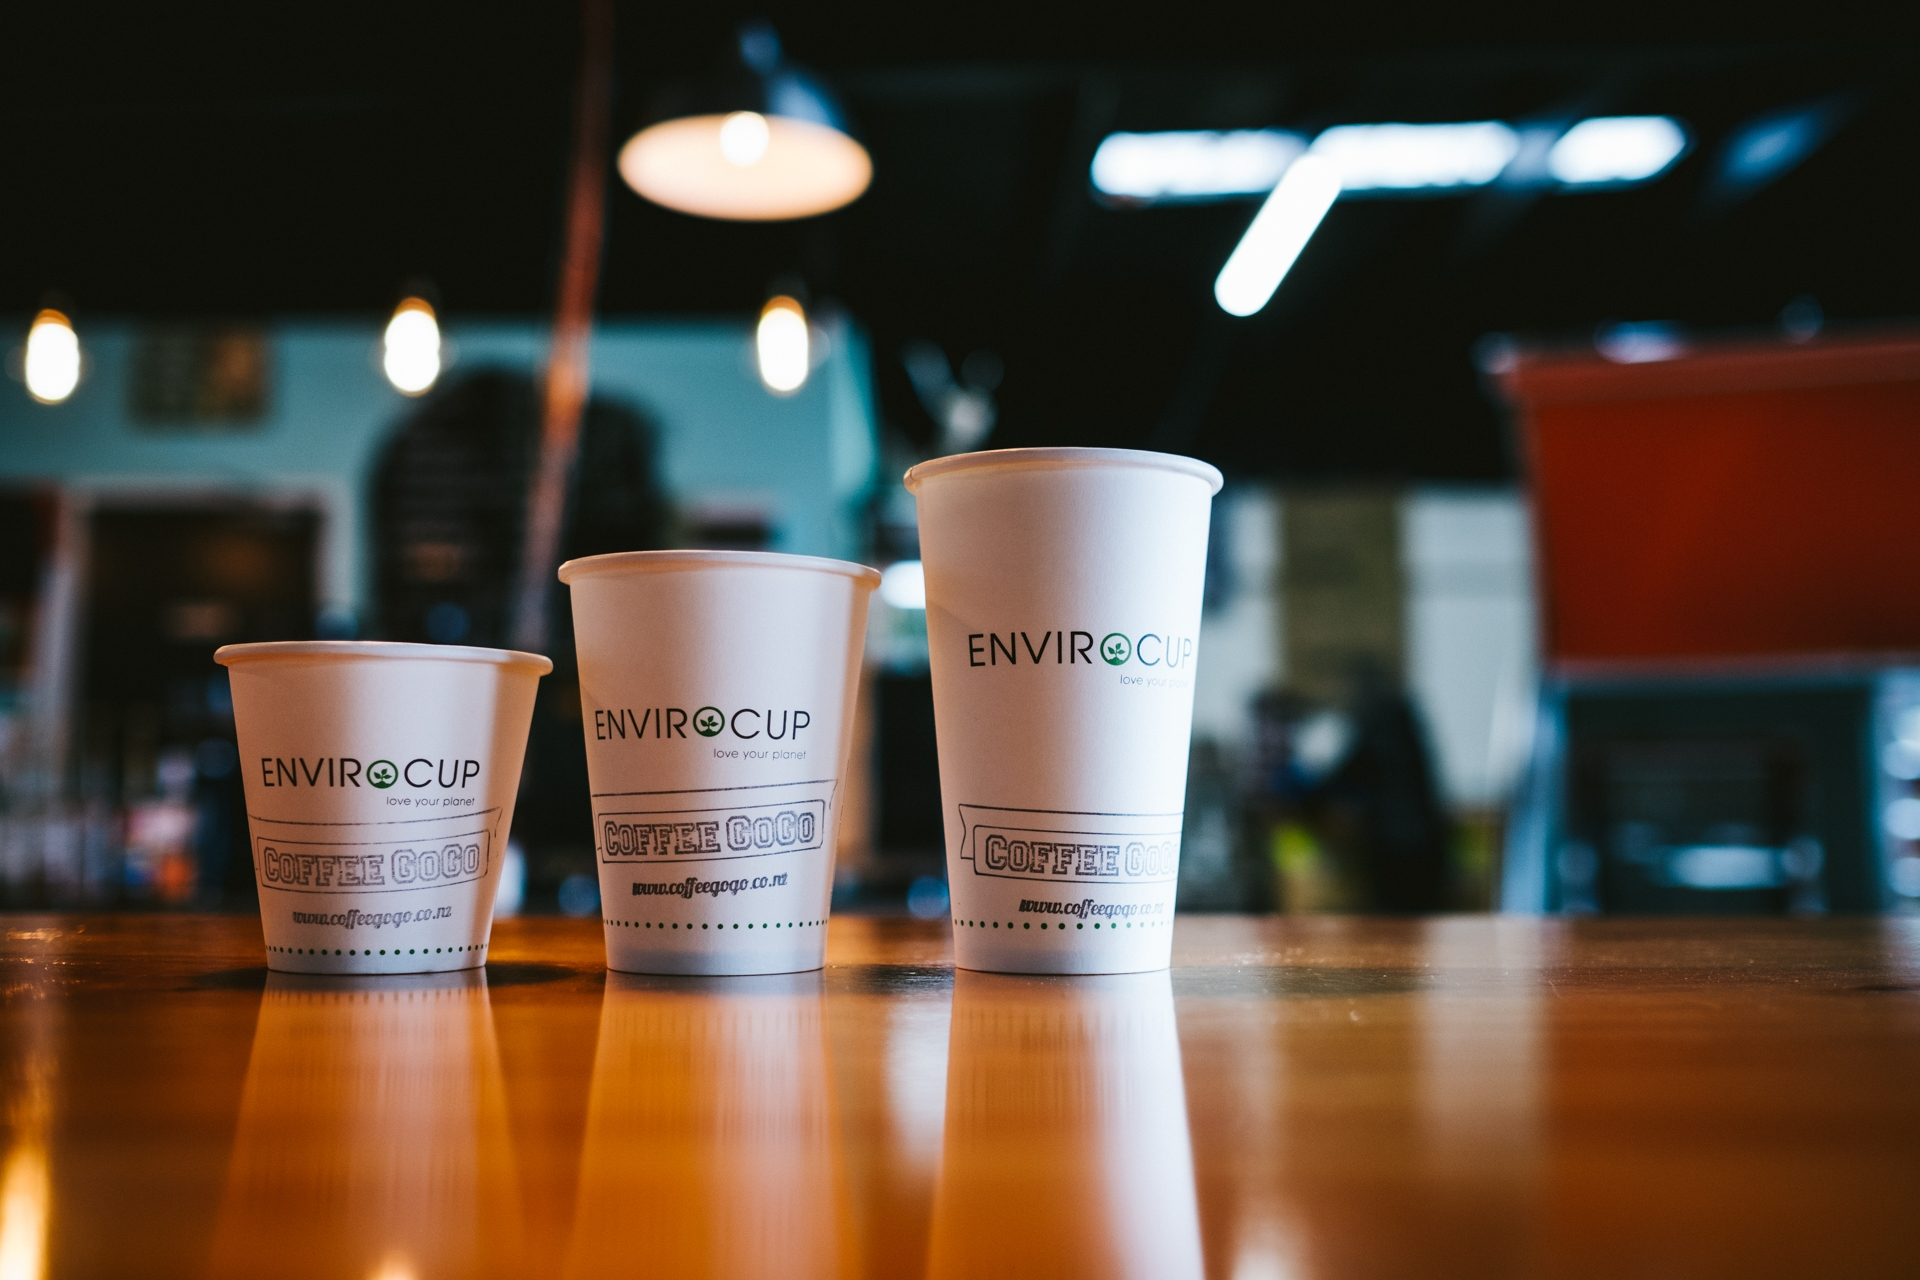 100% plastic free - What are our cups made of ? Well, the linings and lids are made of natural PLA, a plant-based bioplastic (Polylactic Acid). The paper used in the cups is sourced from managed plantations which are certified PEFC and the lids are made of Ingeo™biopolymer (corn starch).